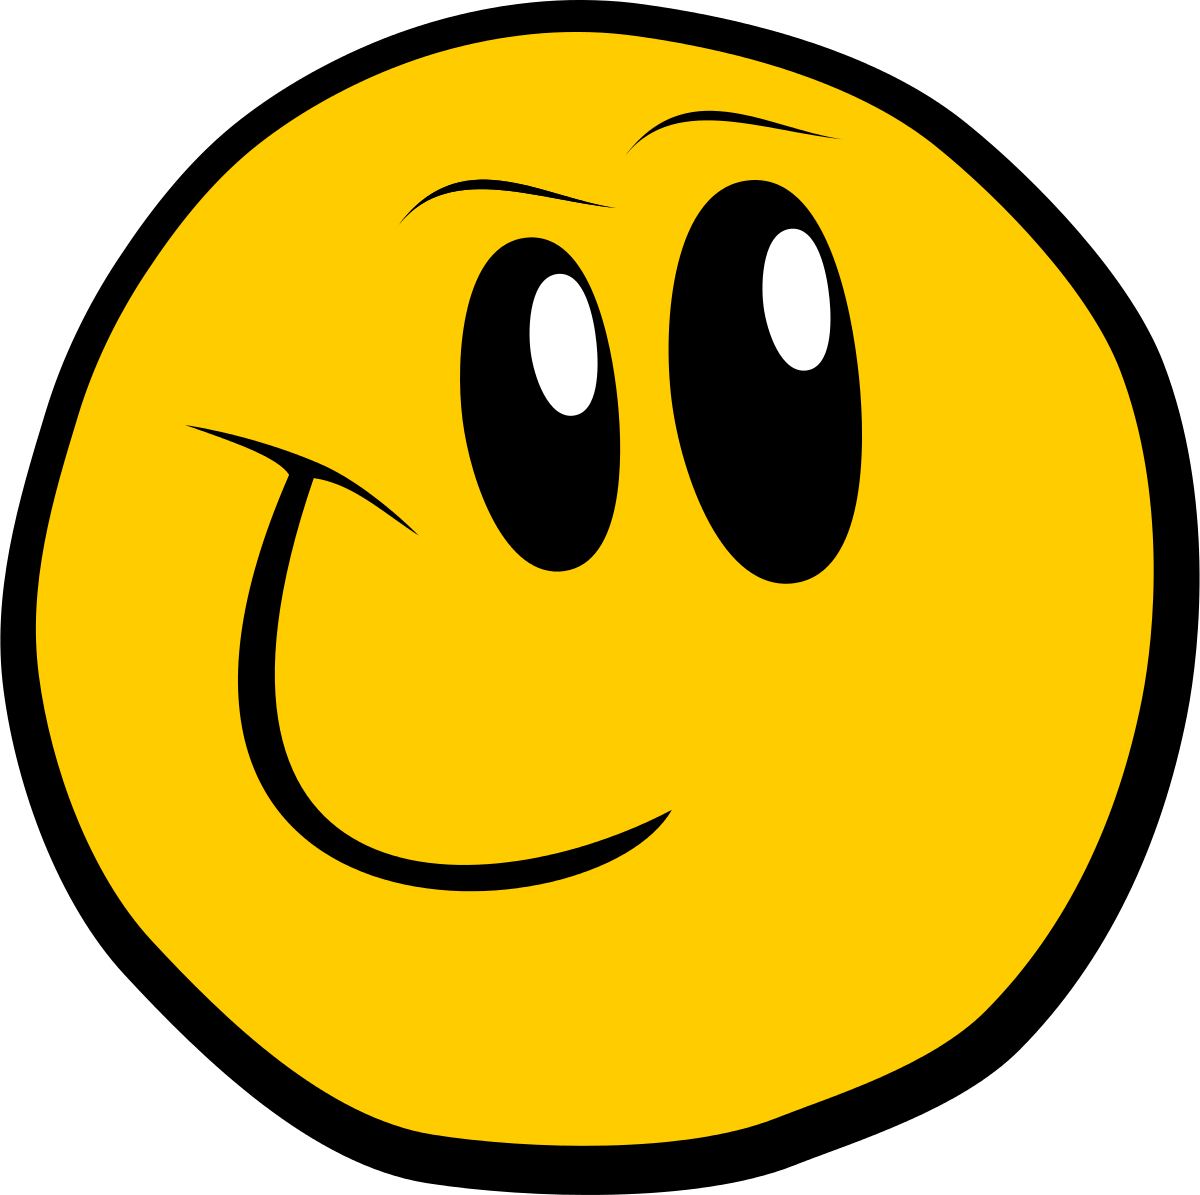 1200x1195 Smiley Face Clip Art Yearbook Cliparts